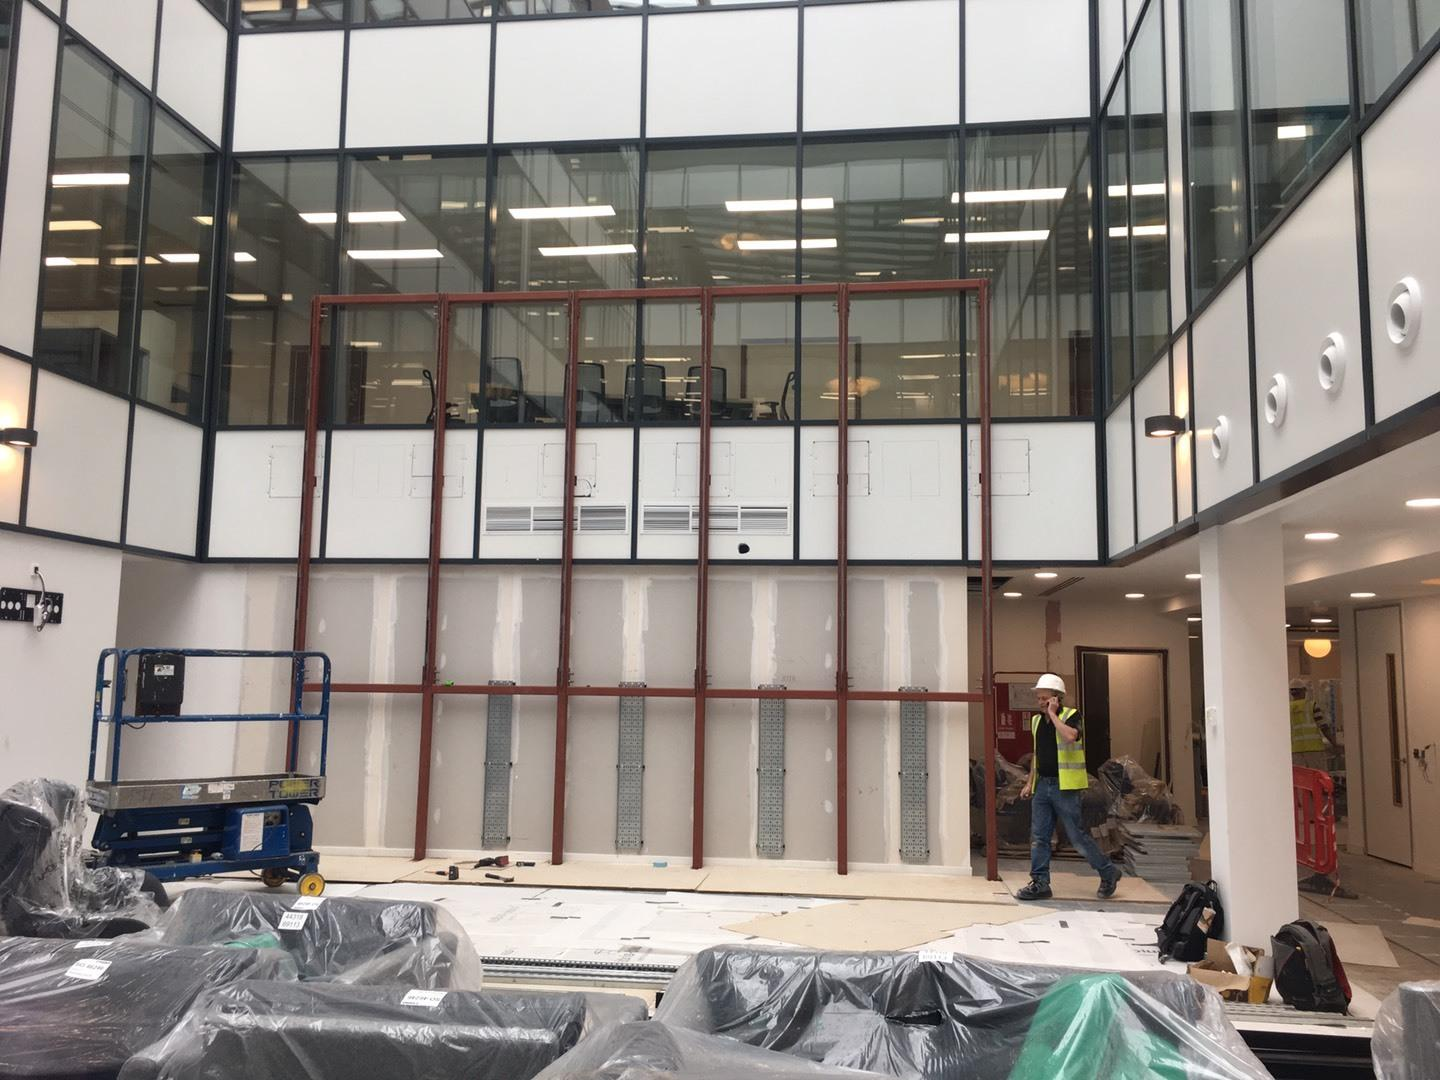 Work begins on the 25 screen video wall